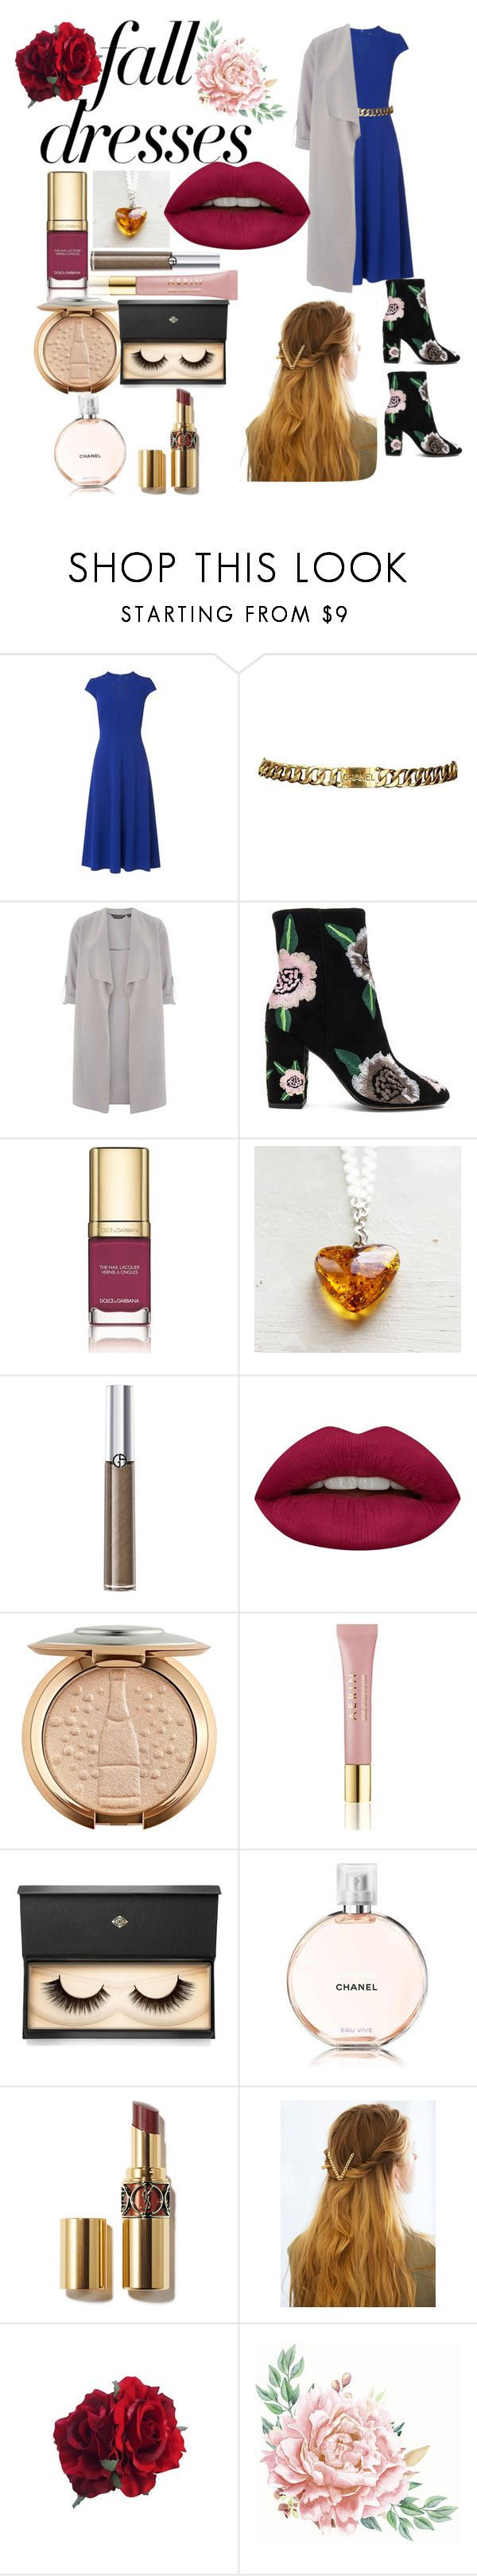 Fall 🍂🍂 by galaxyqueen34 on Polyvore Dorothy Perkins, Rebecca Minkoff, WithChic, Chanel, Huda Beauty, Lash Star Beauty, Giorgio Armani, AERIN and Dolce&Gabbana, Amber Heart Pendant by SecretStoneLab